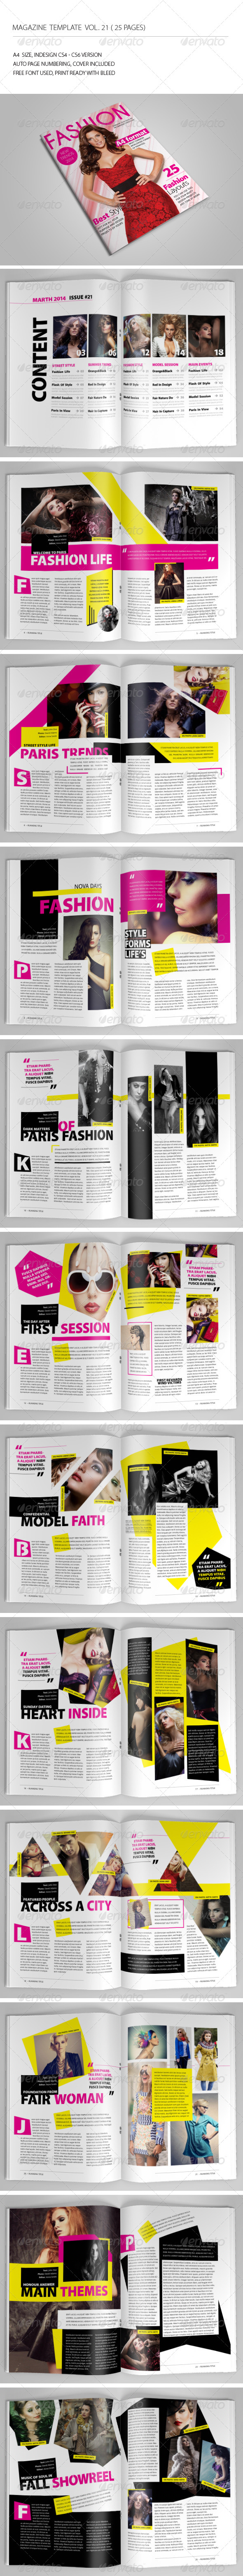 25 Pages Fashion Magazine Vol21 - Magazines Print Templates